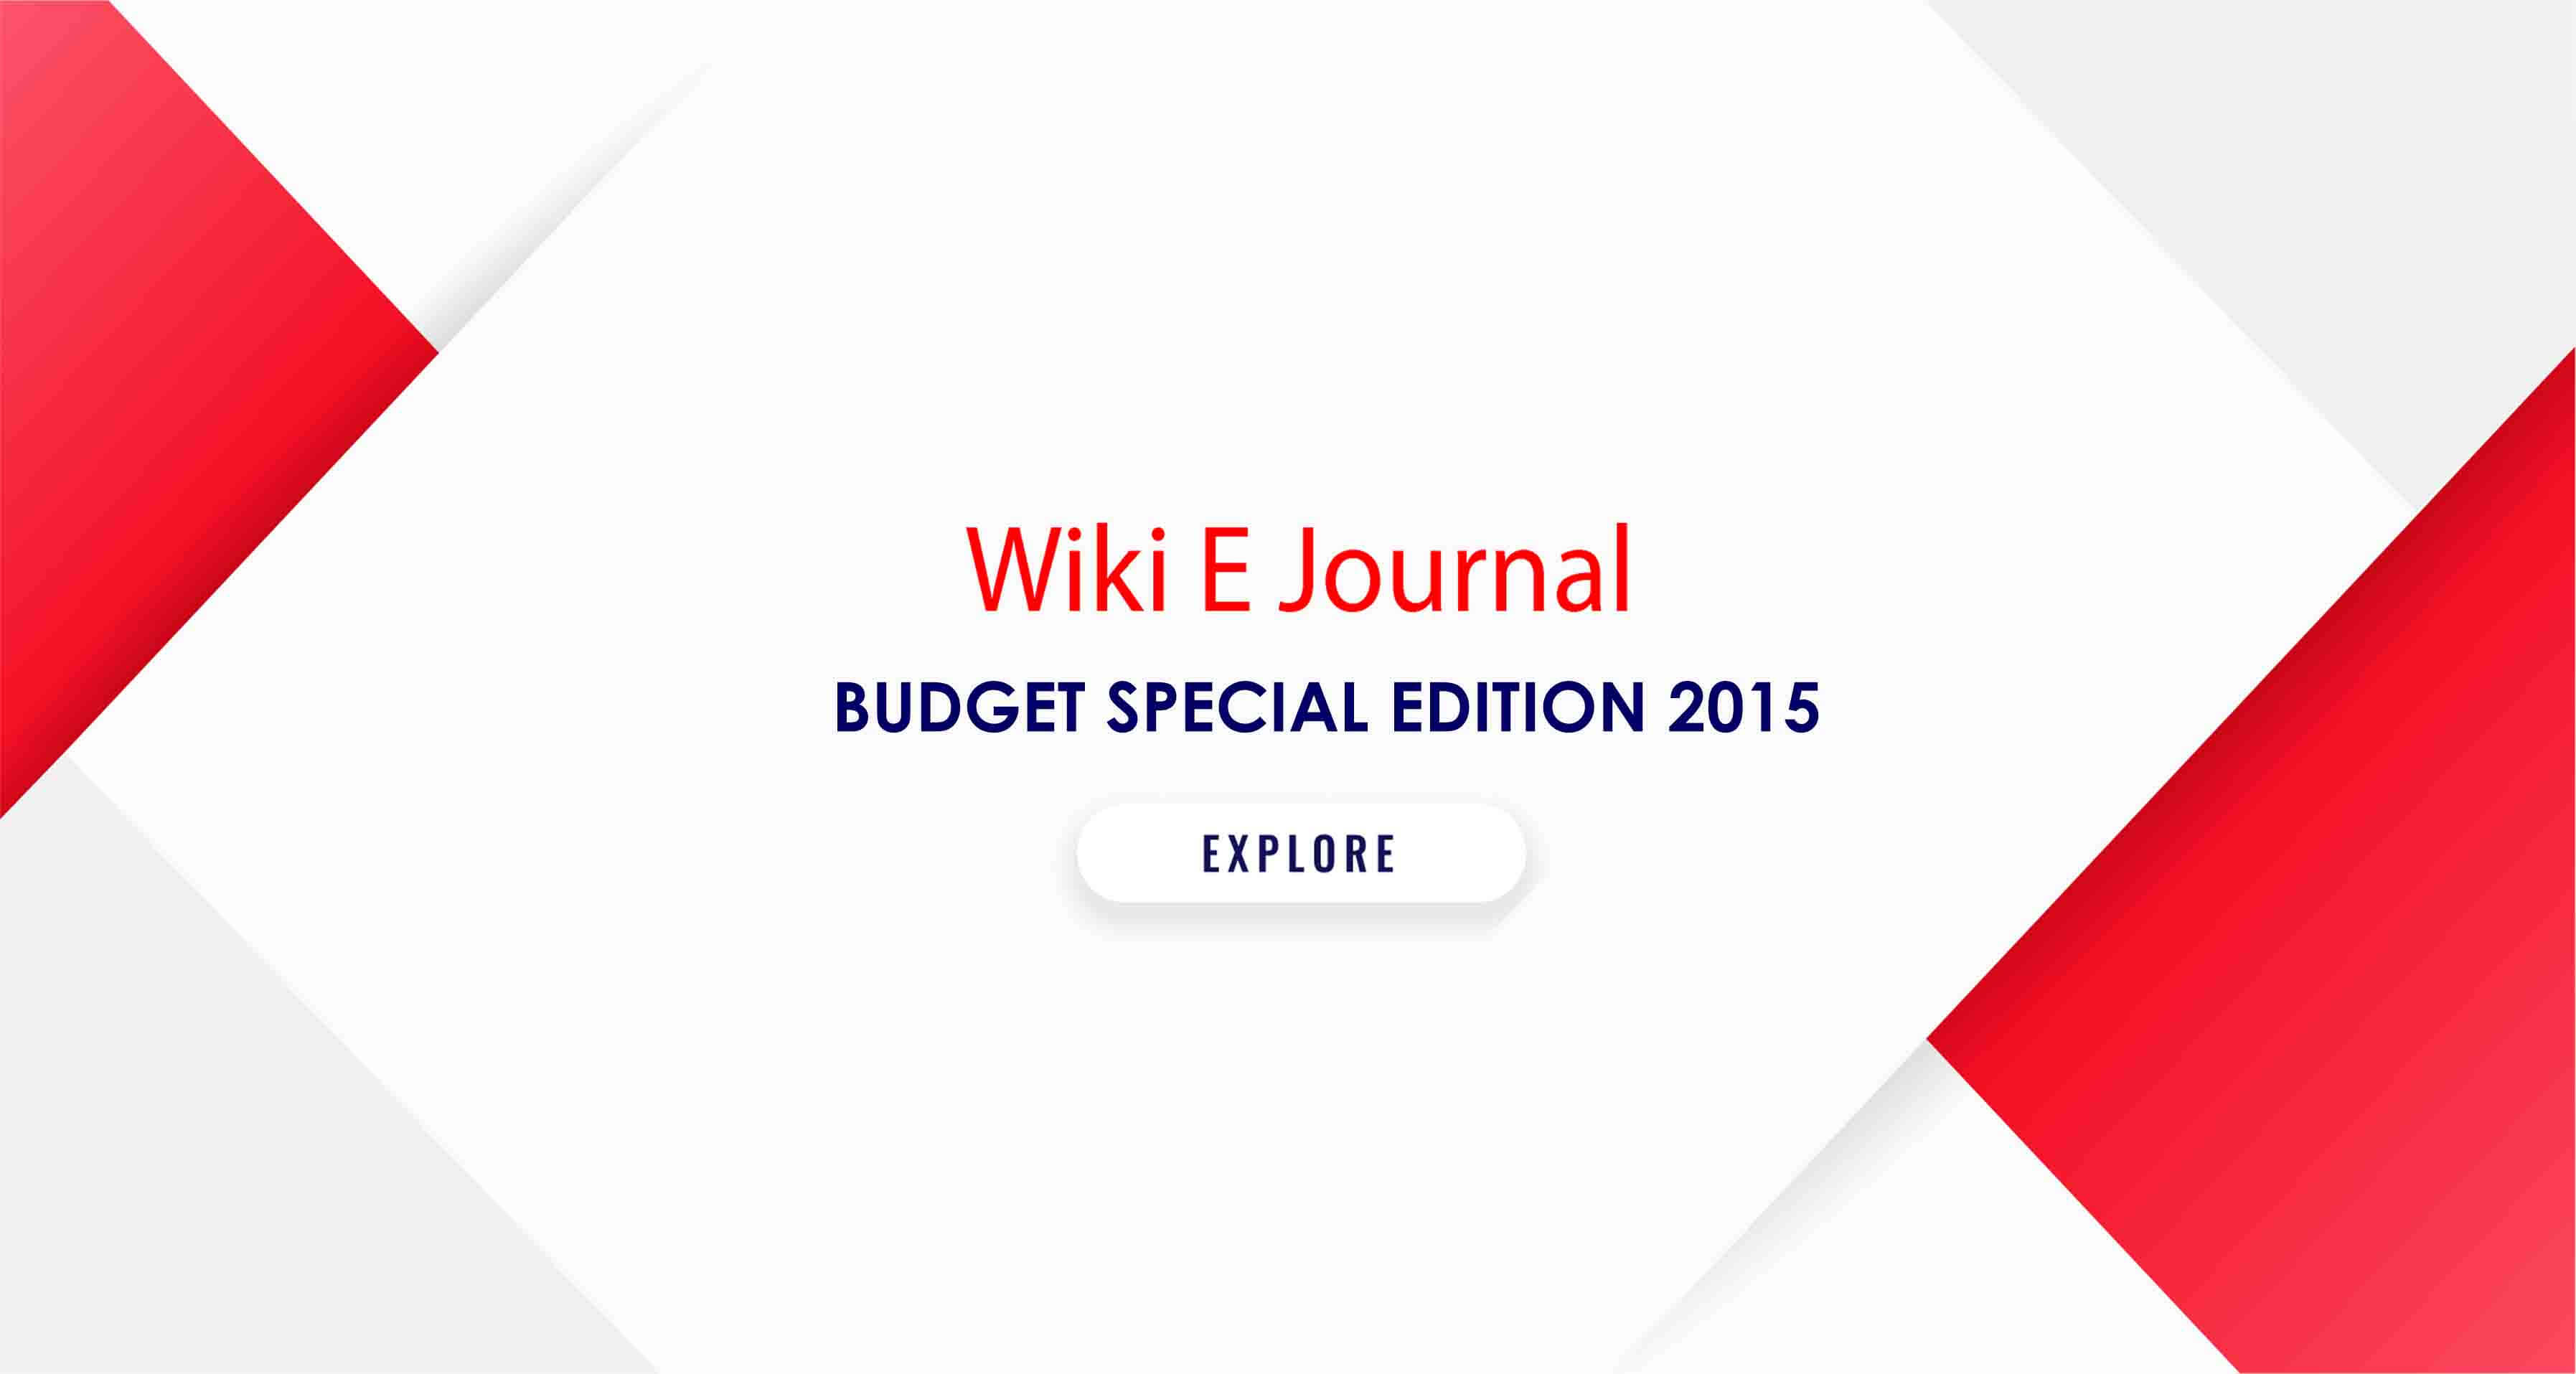 BUDGET SPECIAL EDITION 2015